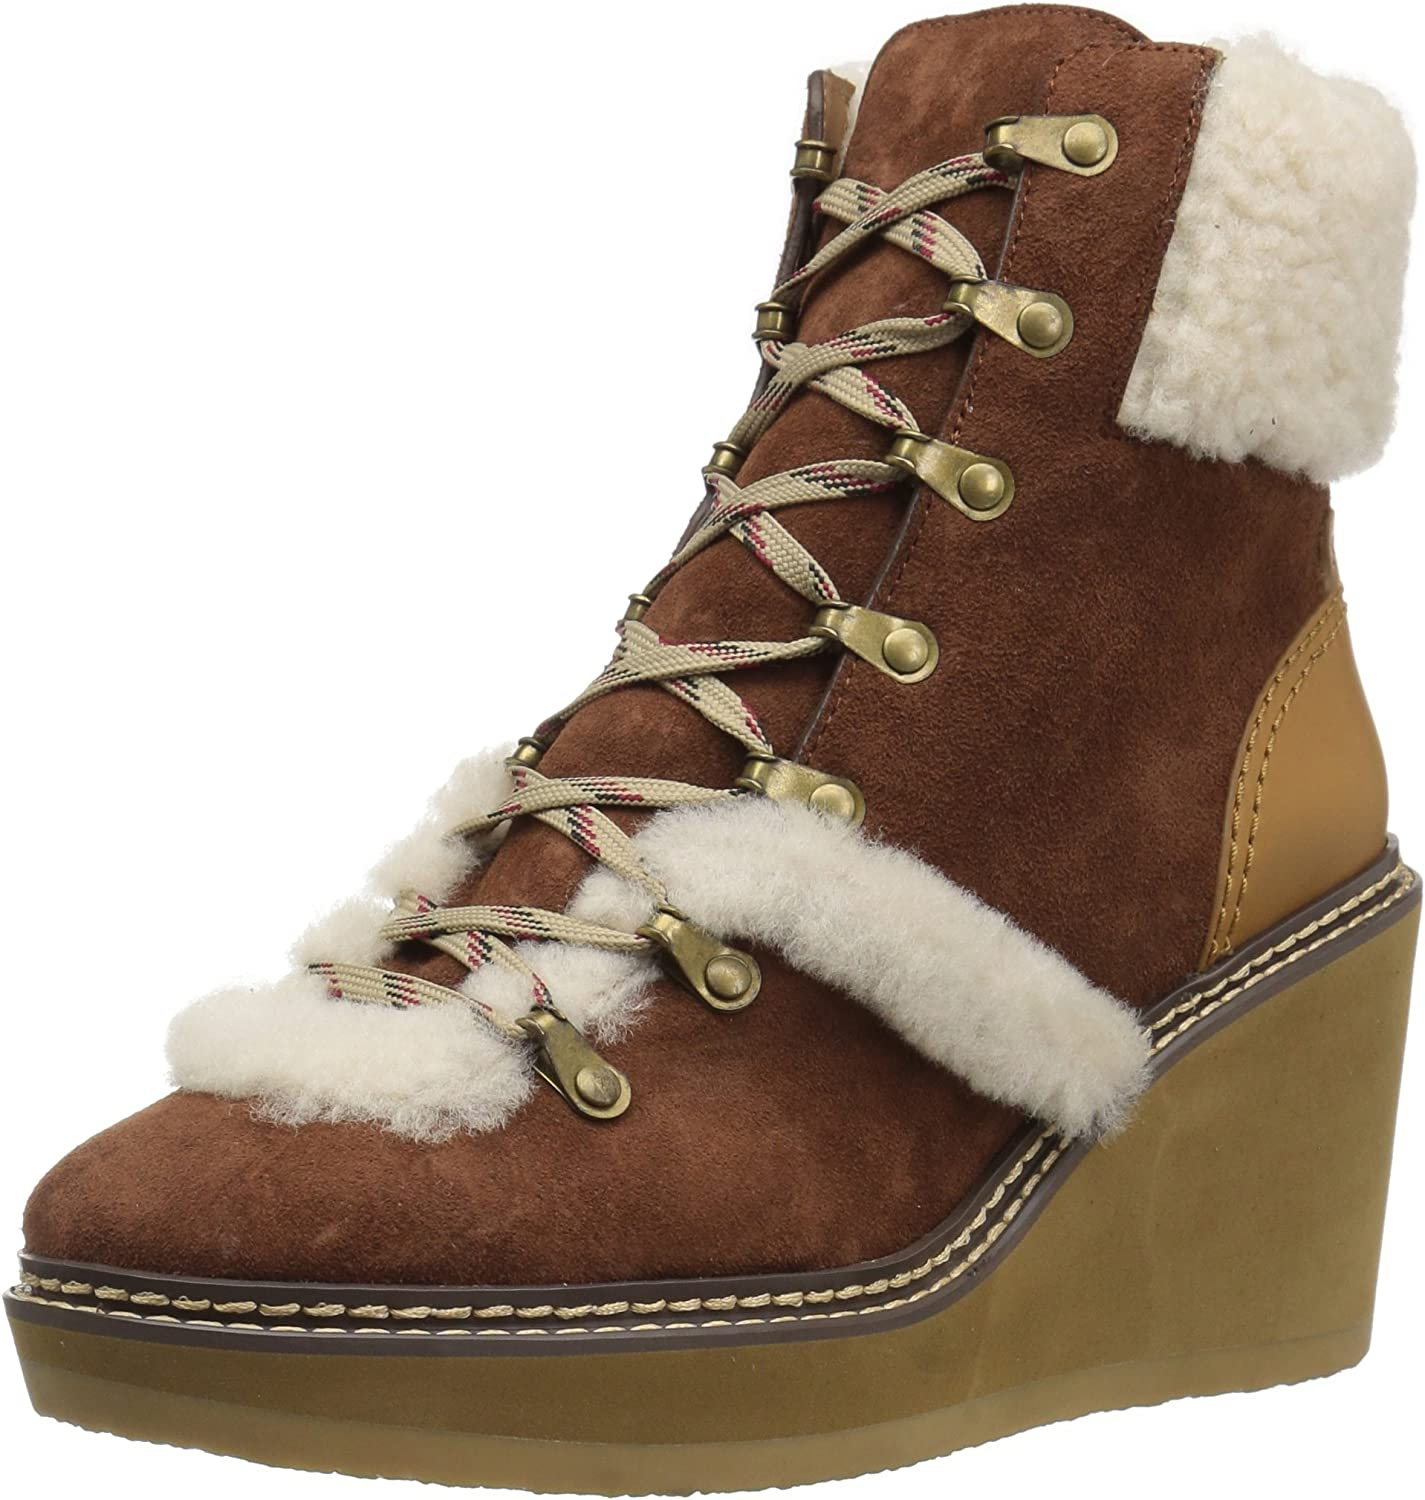 SEE BY CHLOé Womens Eileen Wedge Boot W Shearling Fashion Boot